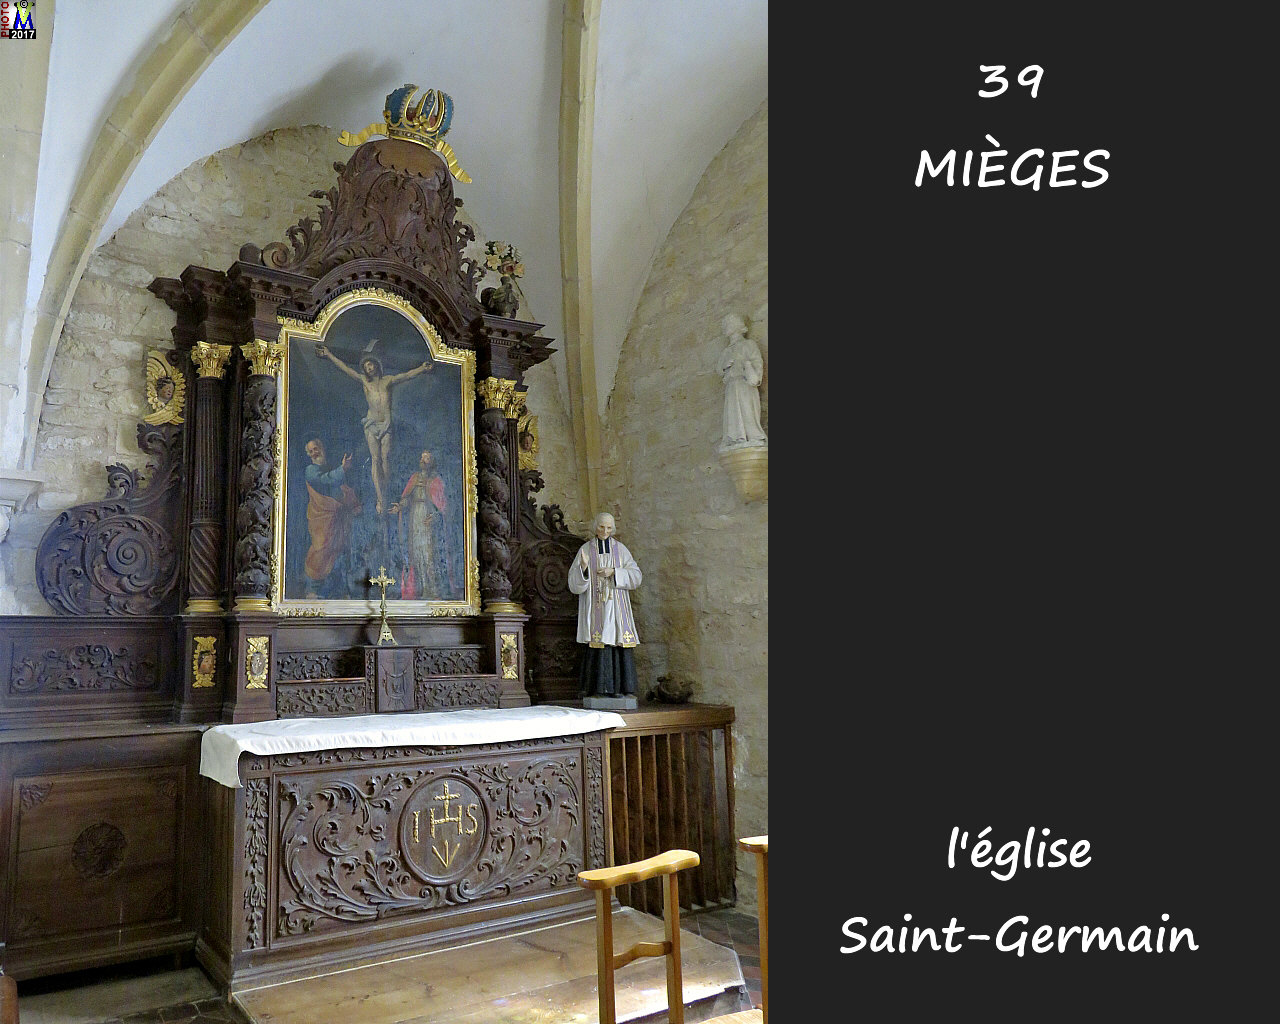 39MIEGES_eglise_220.jpg